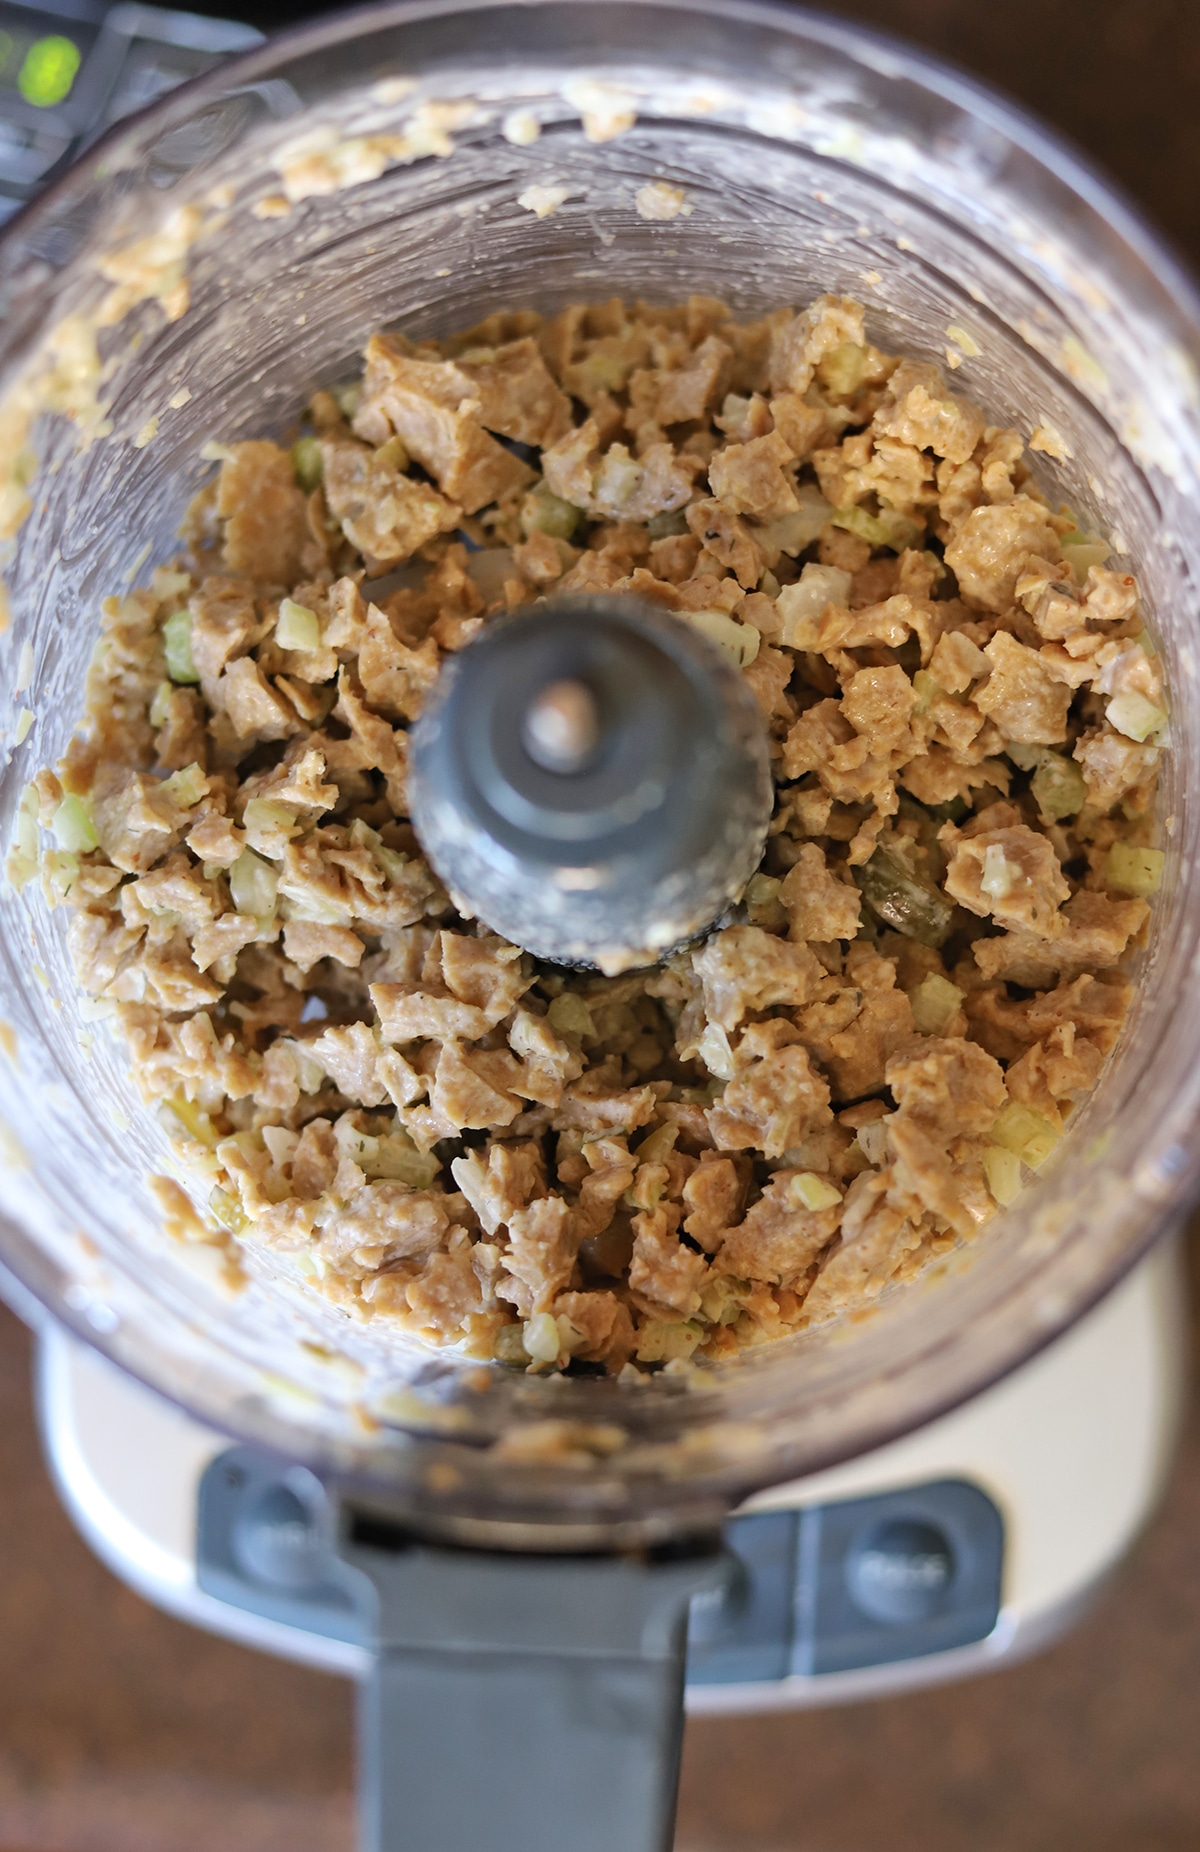 Chopped mock chicken salad in food processor bowl.